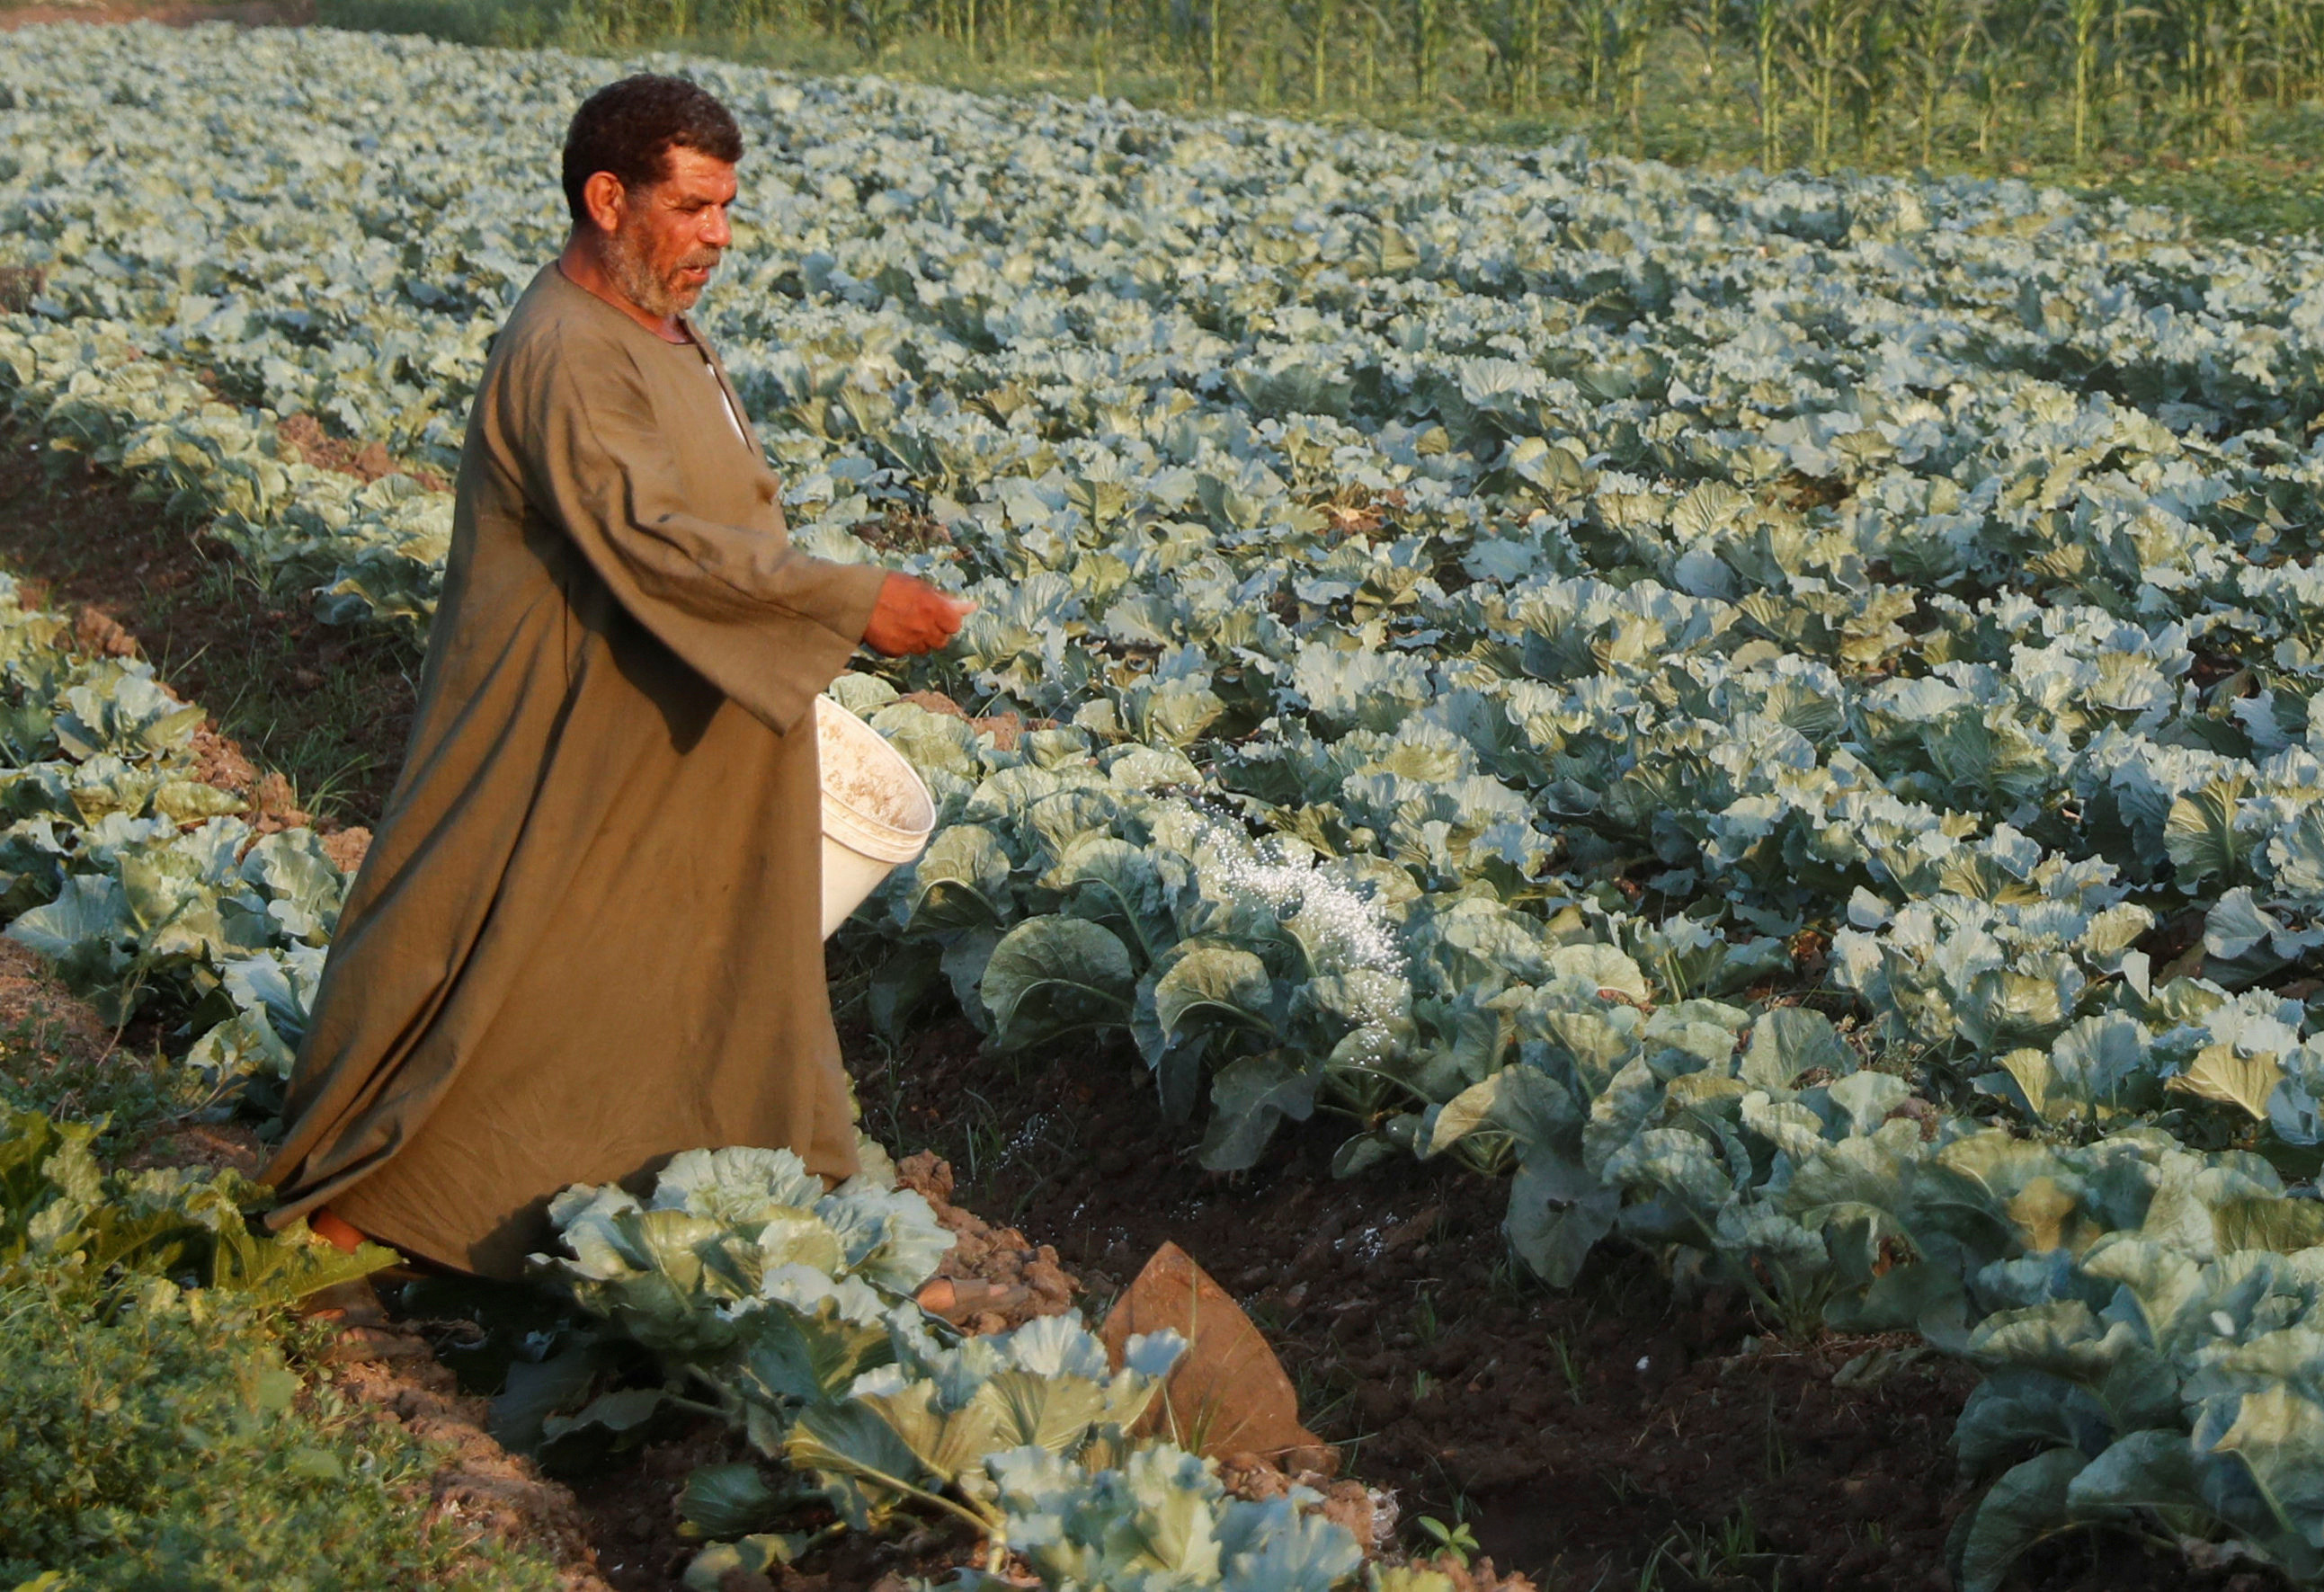 A farmer works in cabbage field while Egypt celebrates Farmers Day, amid concerns over the coronavirus disease (COVID-19), near Sharqia along the agricultural road which leads to Cairo, Egypt September 9, 2020. REUTERS/Amr Abdallah Dalsh - RC28VI9XE235